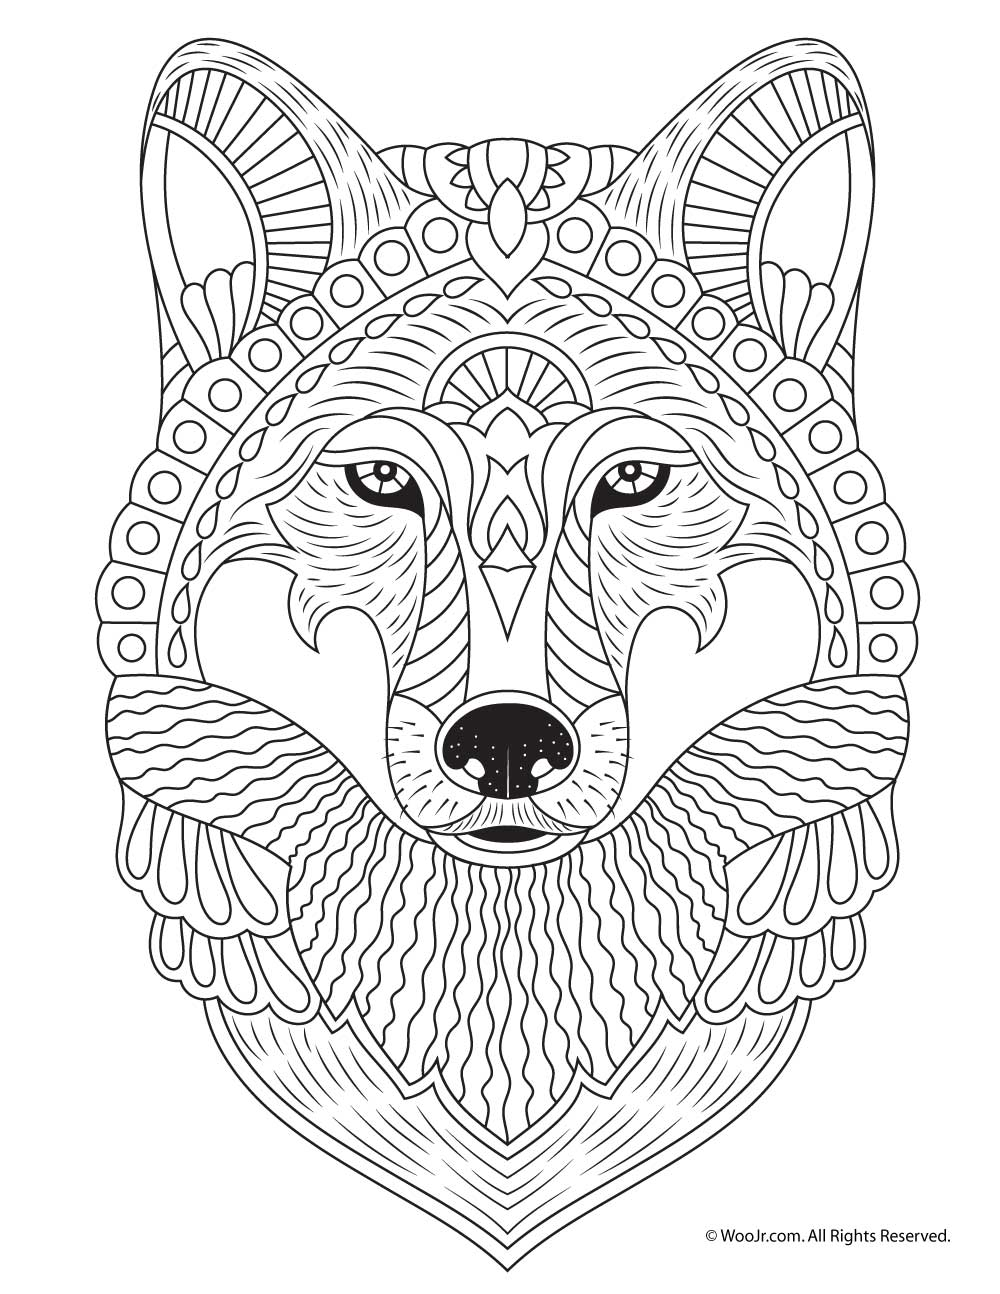 wolf adult coloring page woo jr kids activities. Black Bedroom Furniture Sets. Home Design Ideas